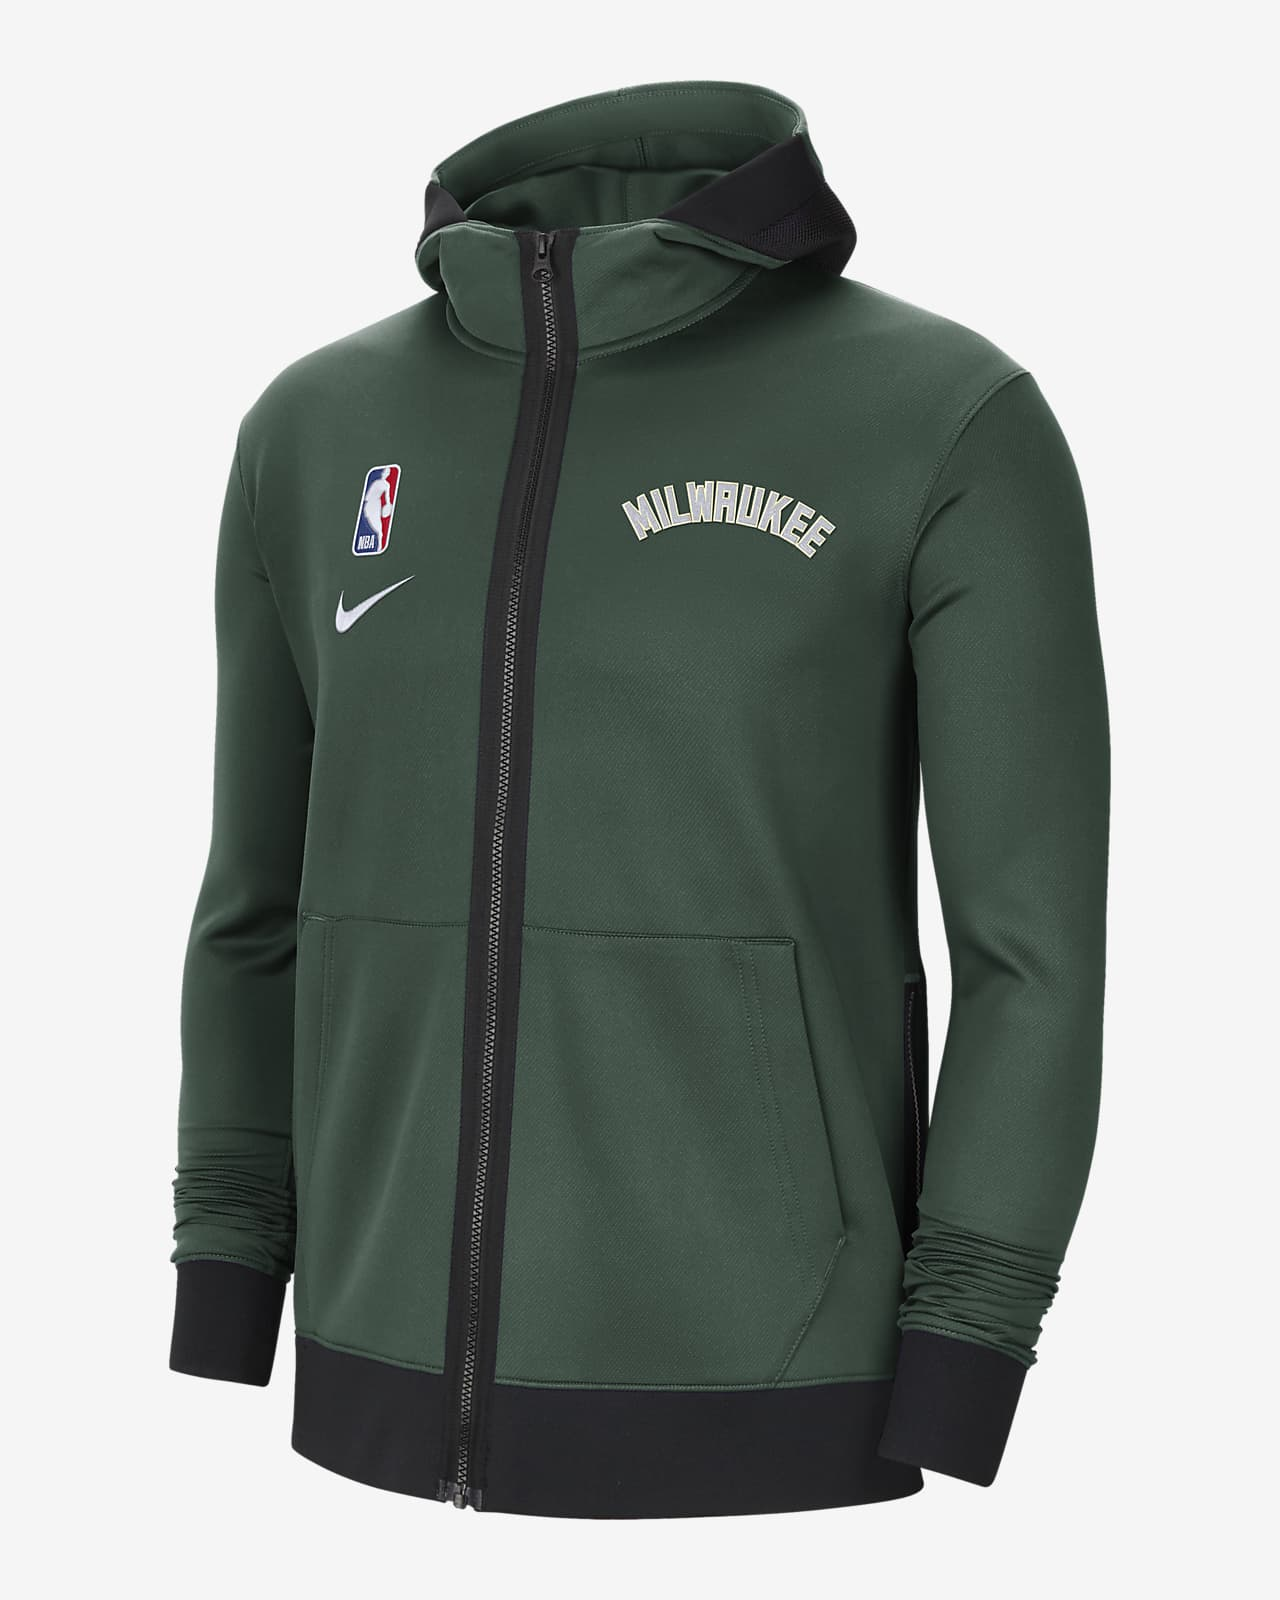 NBA-huvtröja Milwaukee Bucks Showtime Nike Therma Flex för män